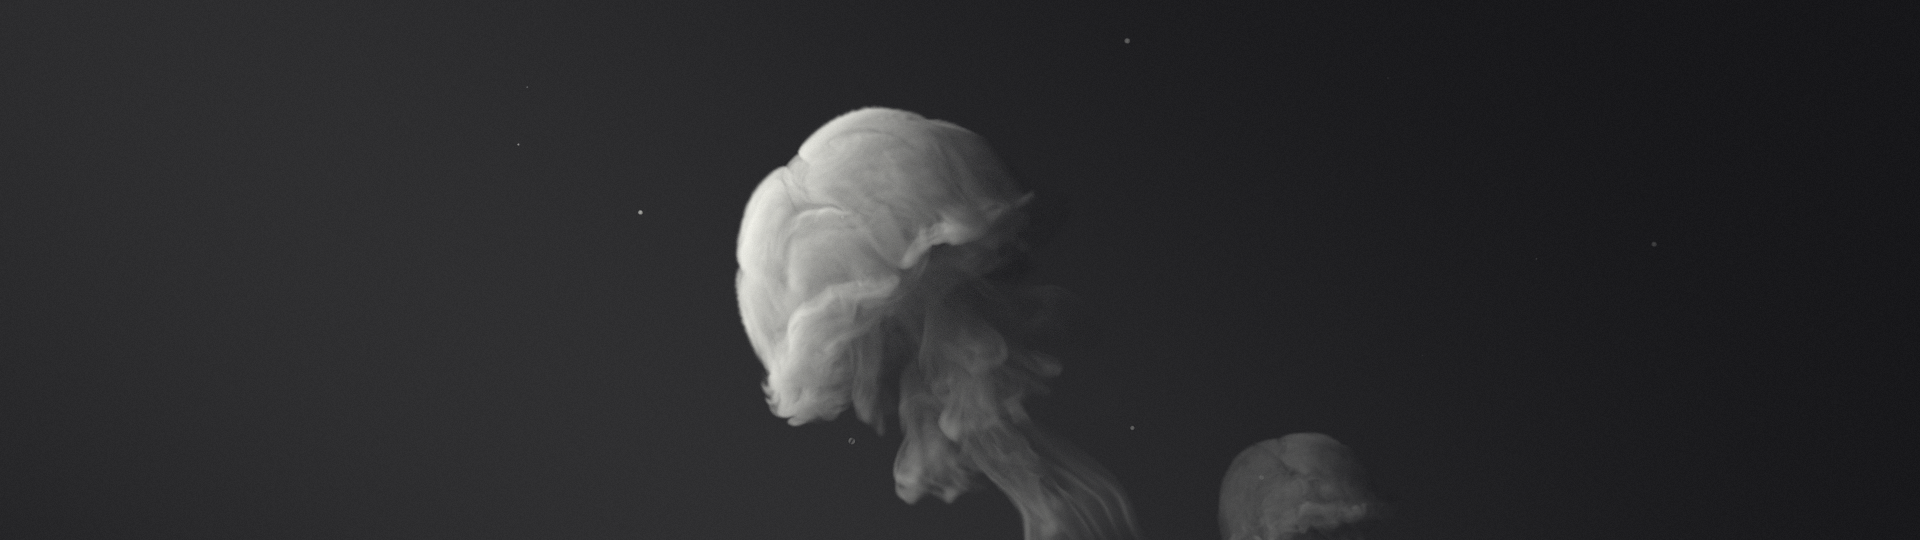 Volume Rendering with Octane Render for Cinema 4D - Turbulence FD - Smoke Jelly #1